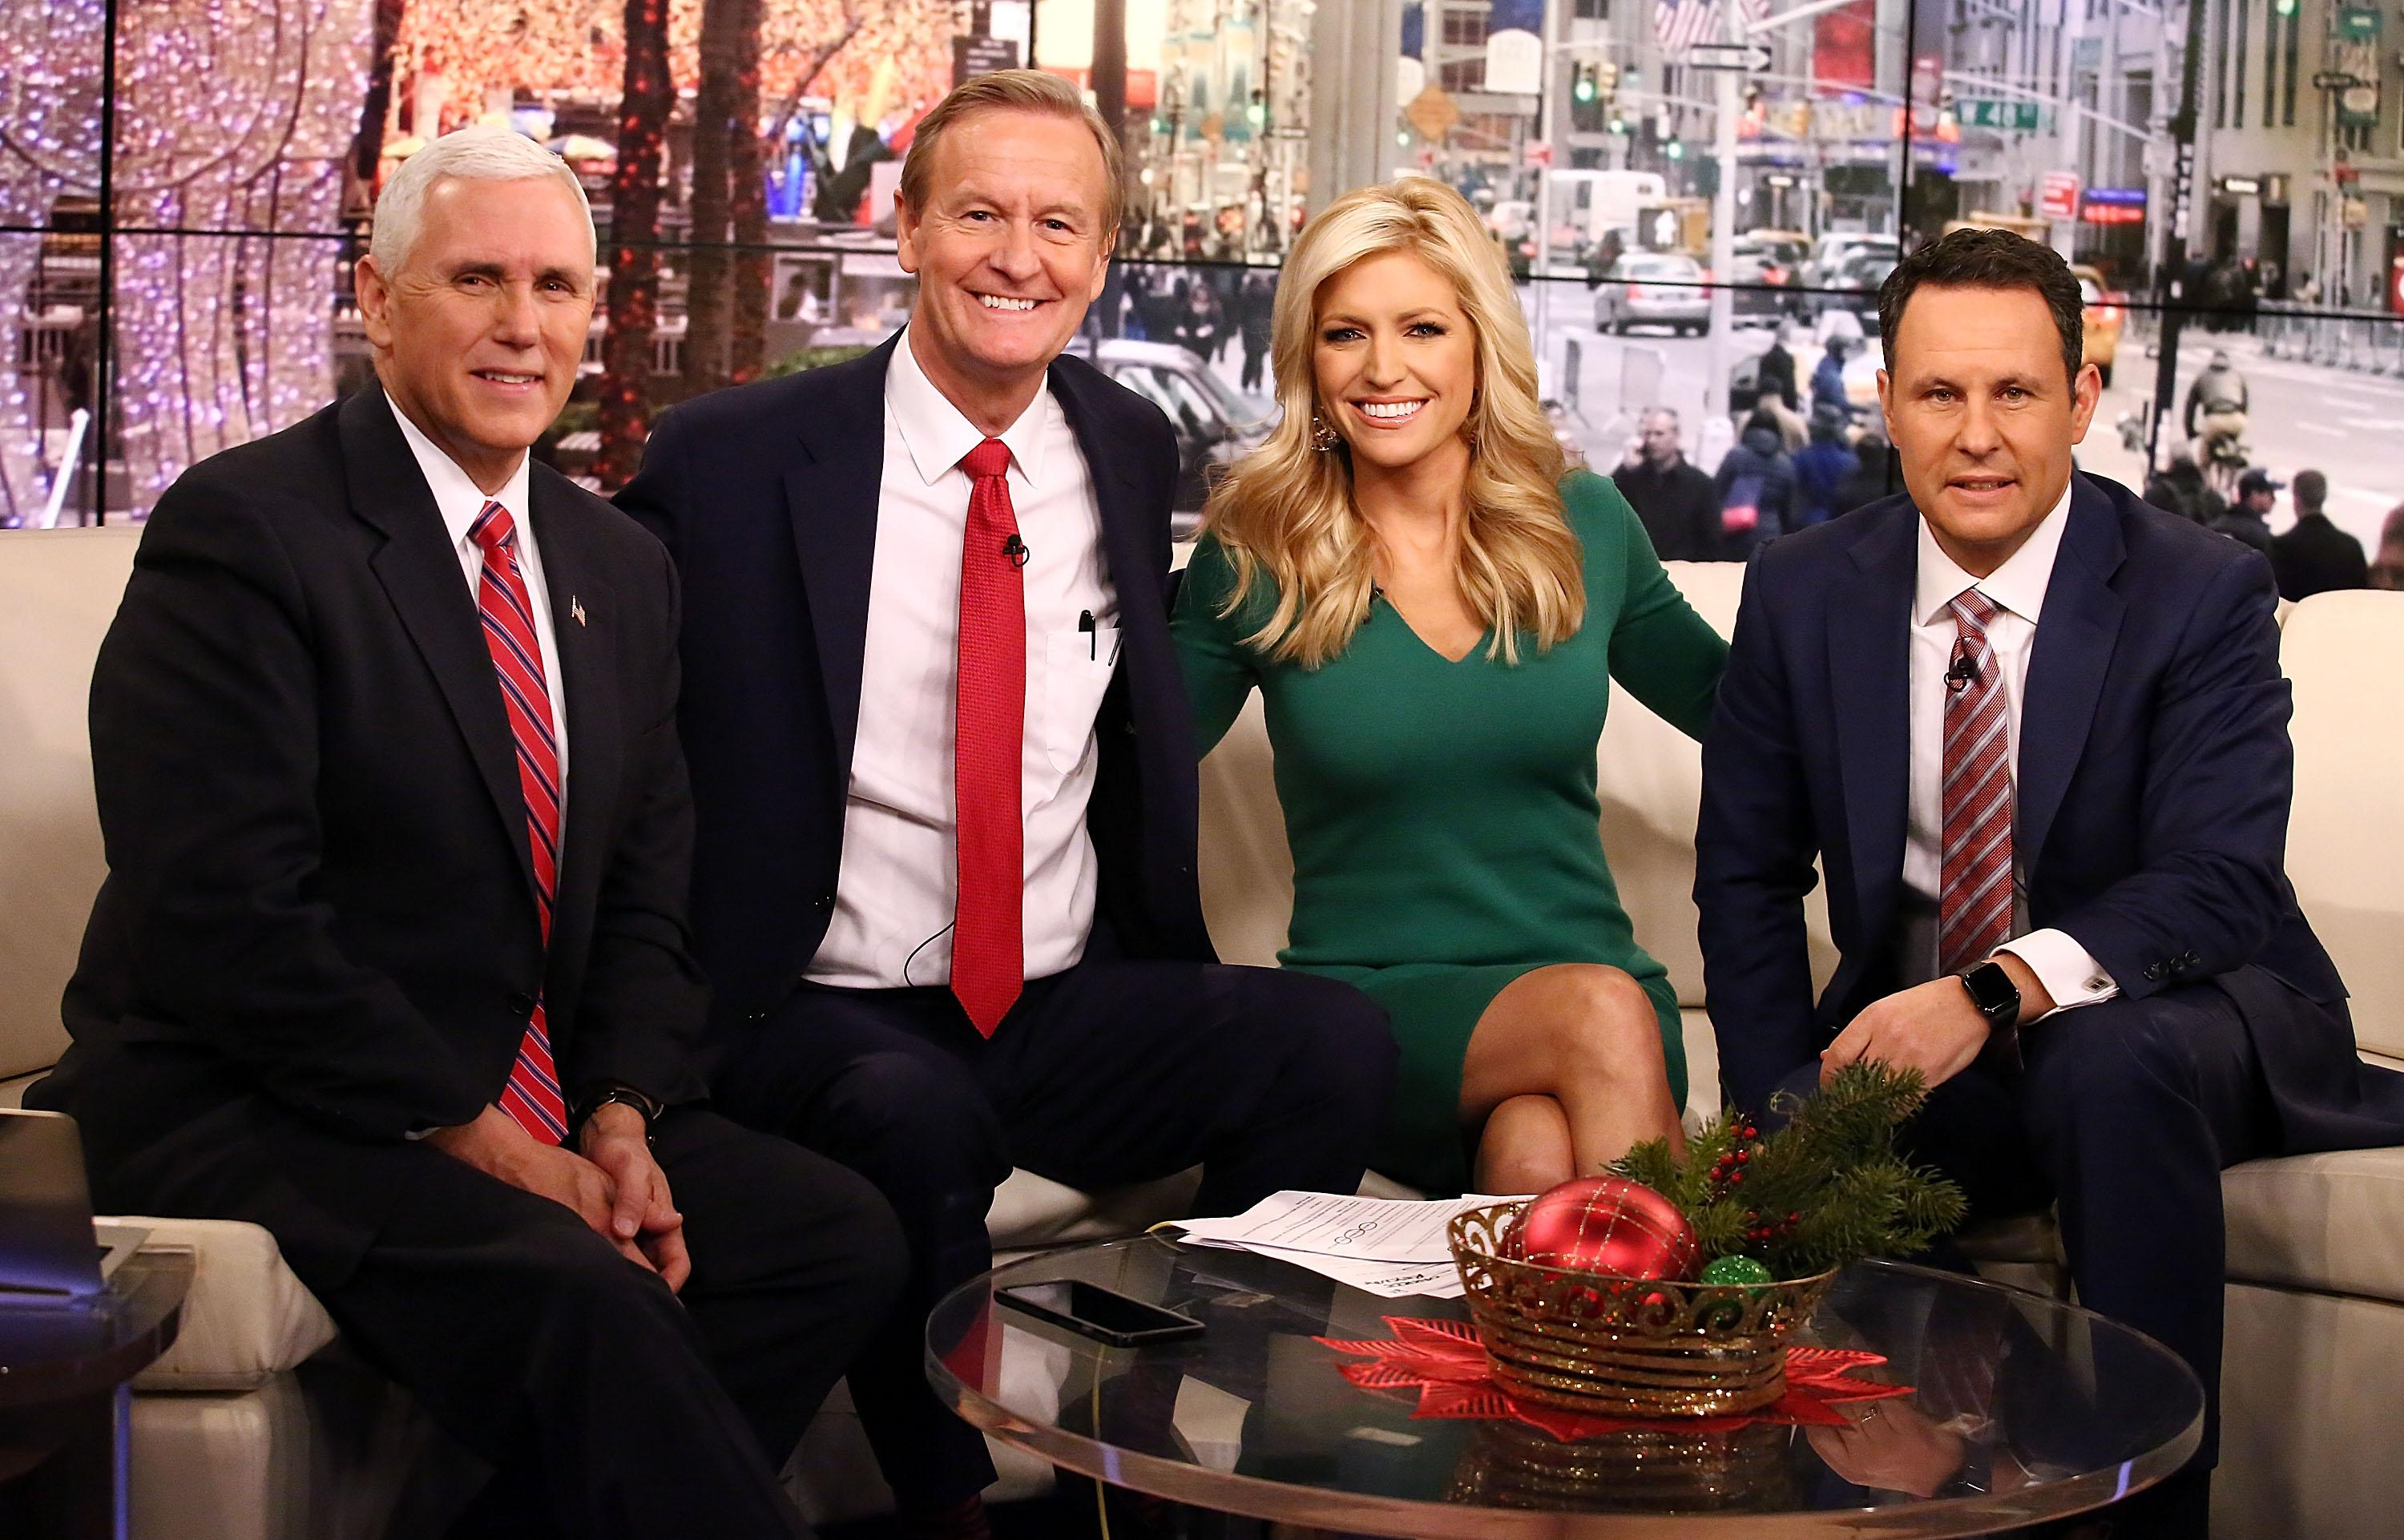 Steve Doocy, Ainsley Earhardt and Brian Kilmeade pose and smile in a studio.